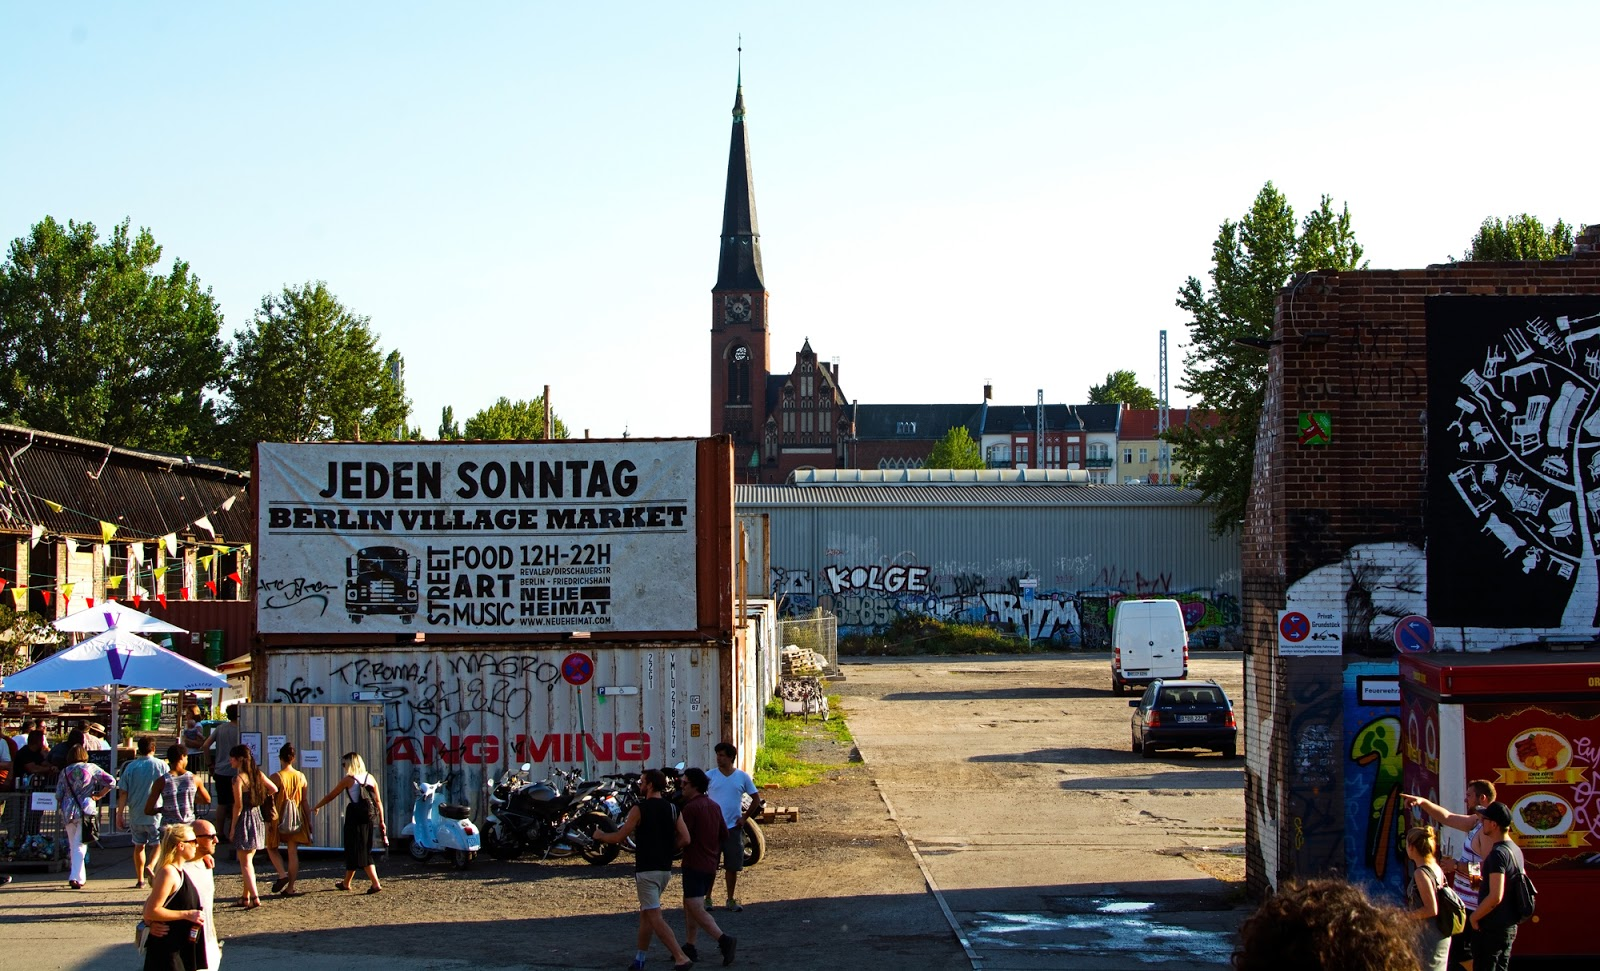 Berlin Village Market